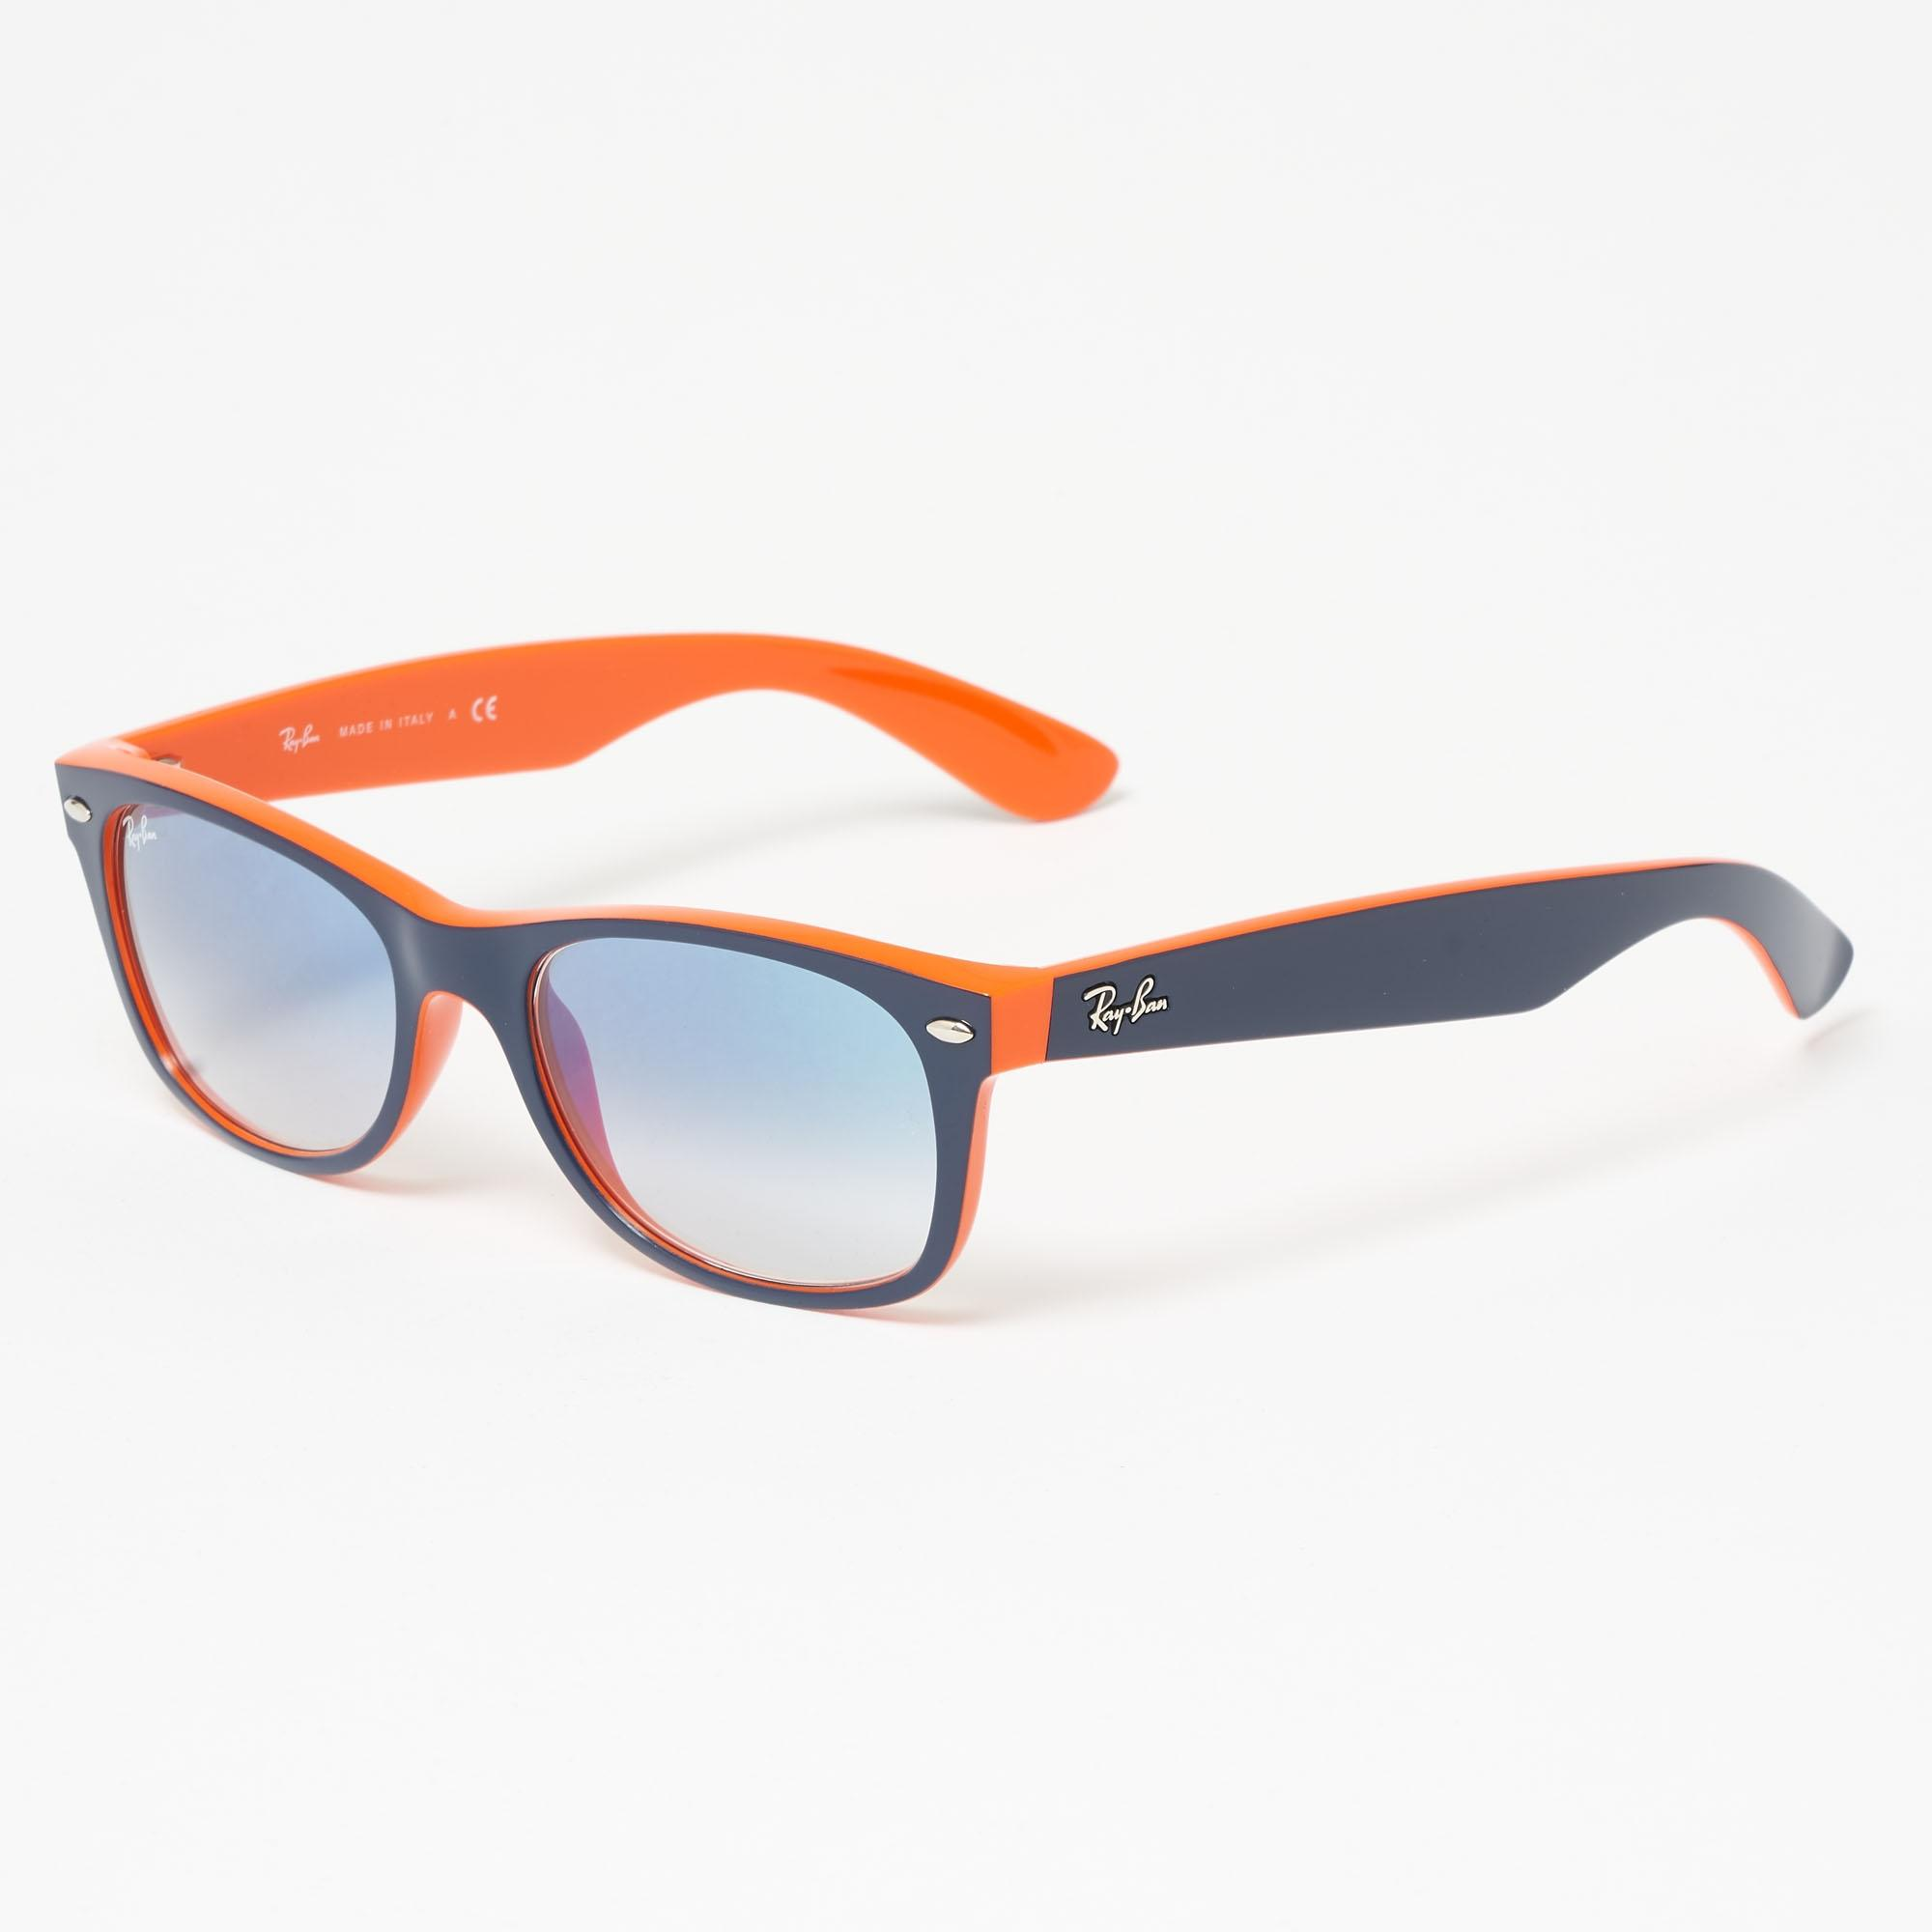 84bea650fd Ray-Ban. Women s New Wayfarer Colour Mix Blue Orange Sunglasses ...